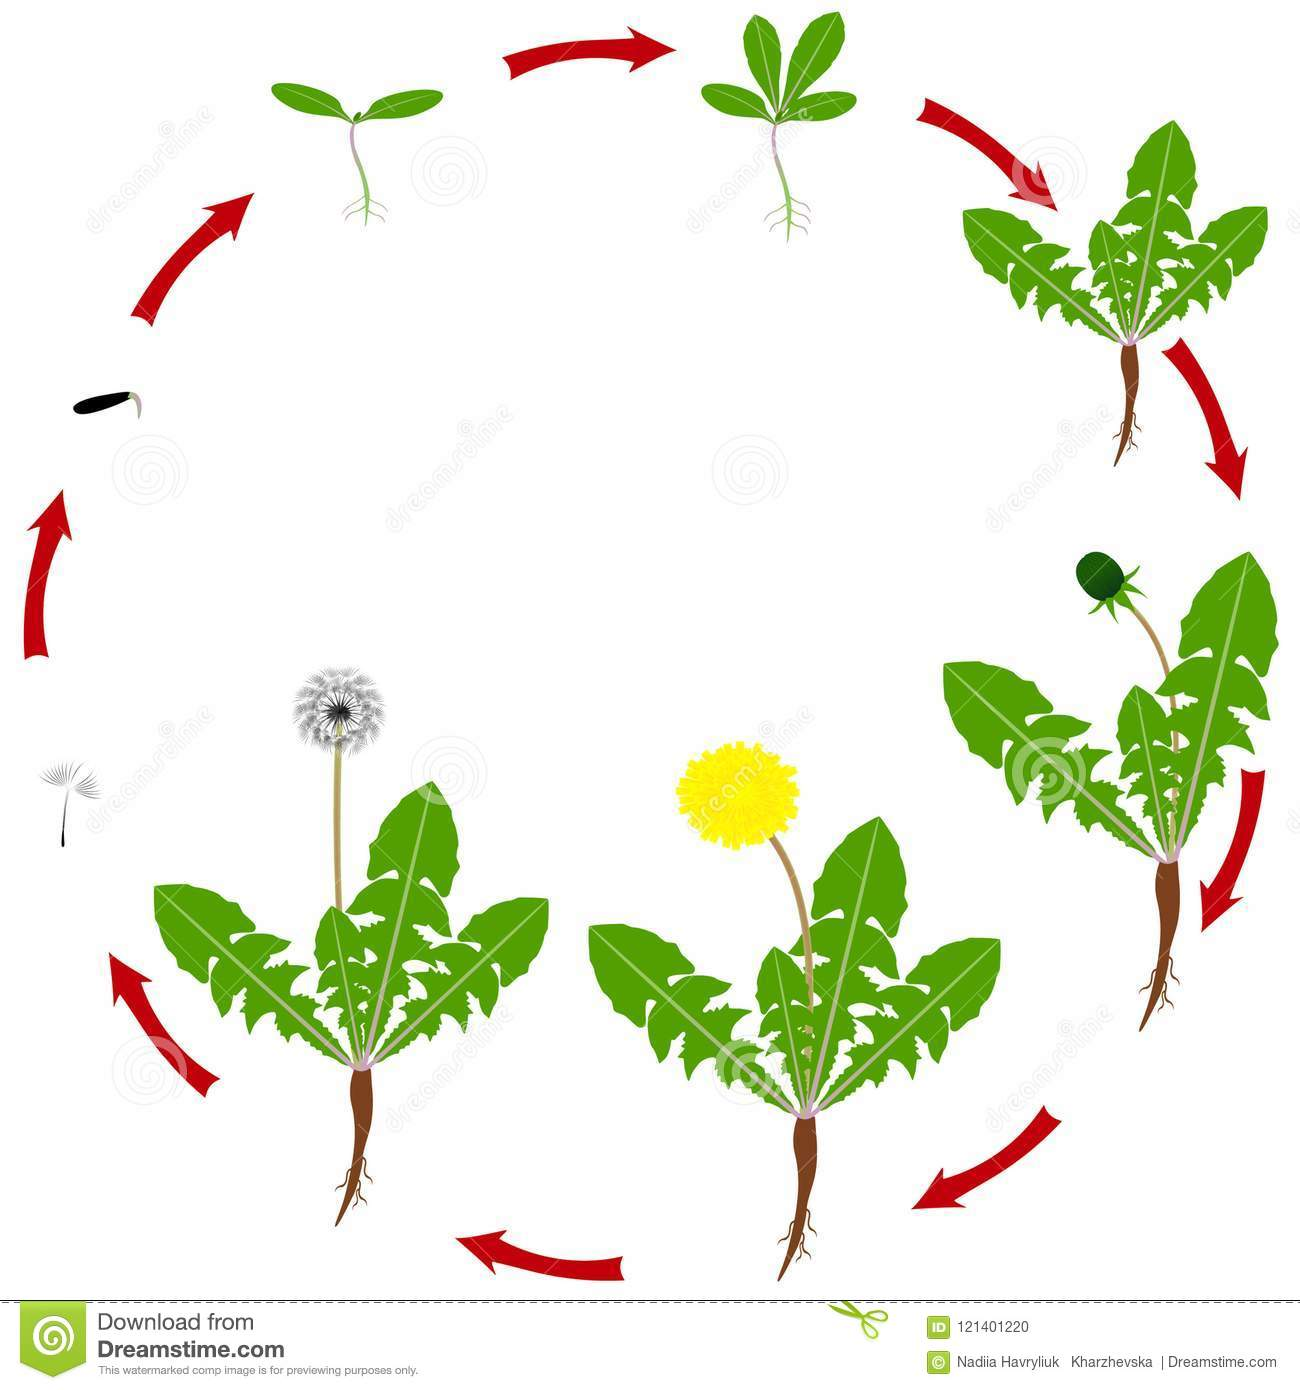 Life Cycle Of Dandelion Cartoon Vector